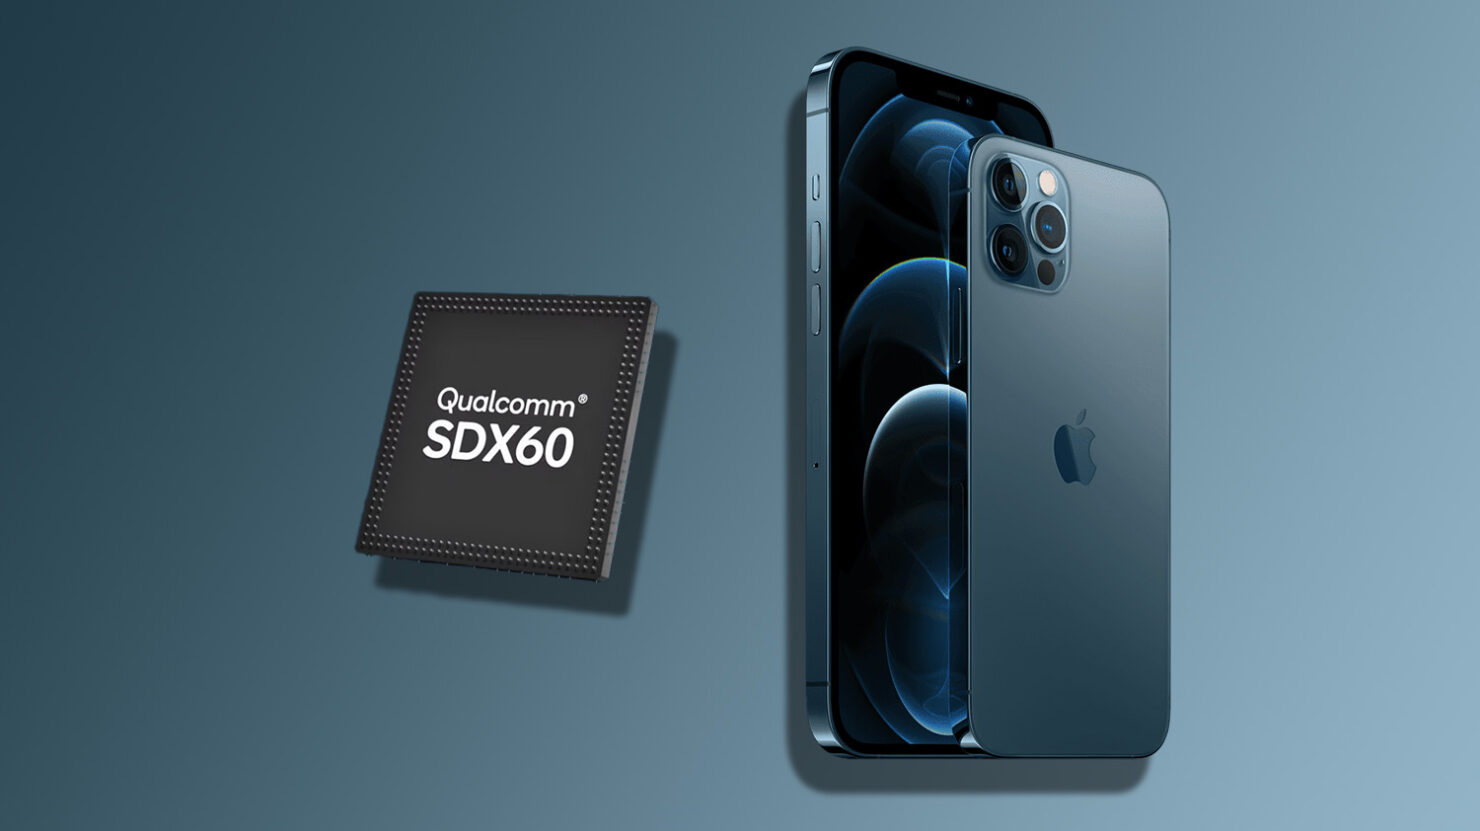 iPhone 13 Lineup to Feature Qualcomm's Snapdragon X60 5G Modem, Not the Latest Snapdragon X65